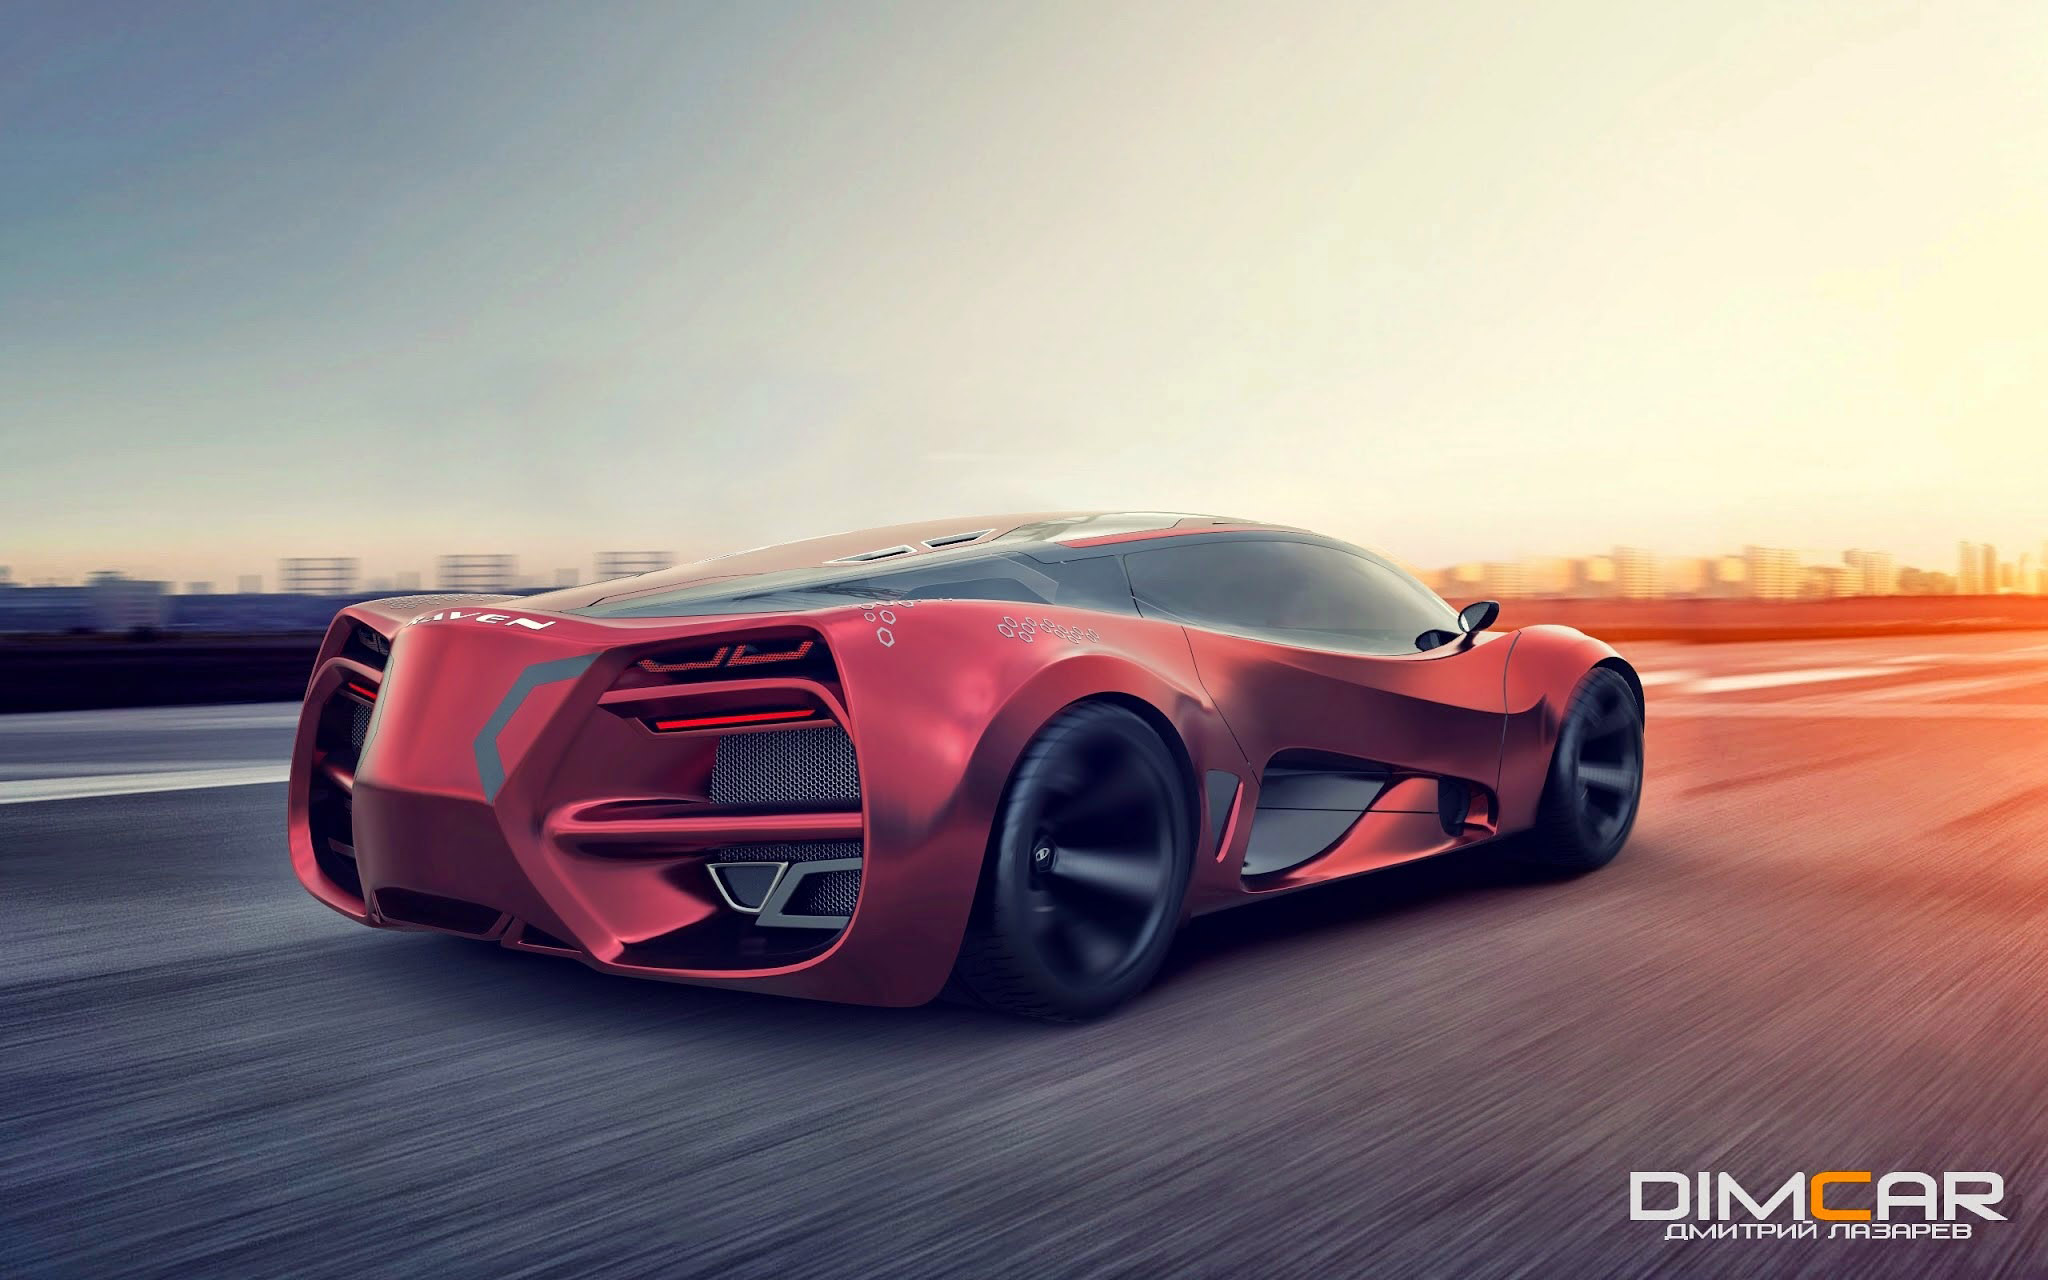 Honda Latest Models >> Lada Has in Mind a Supercar Concept? [VIDEO]